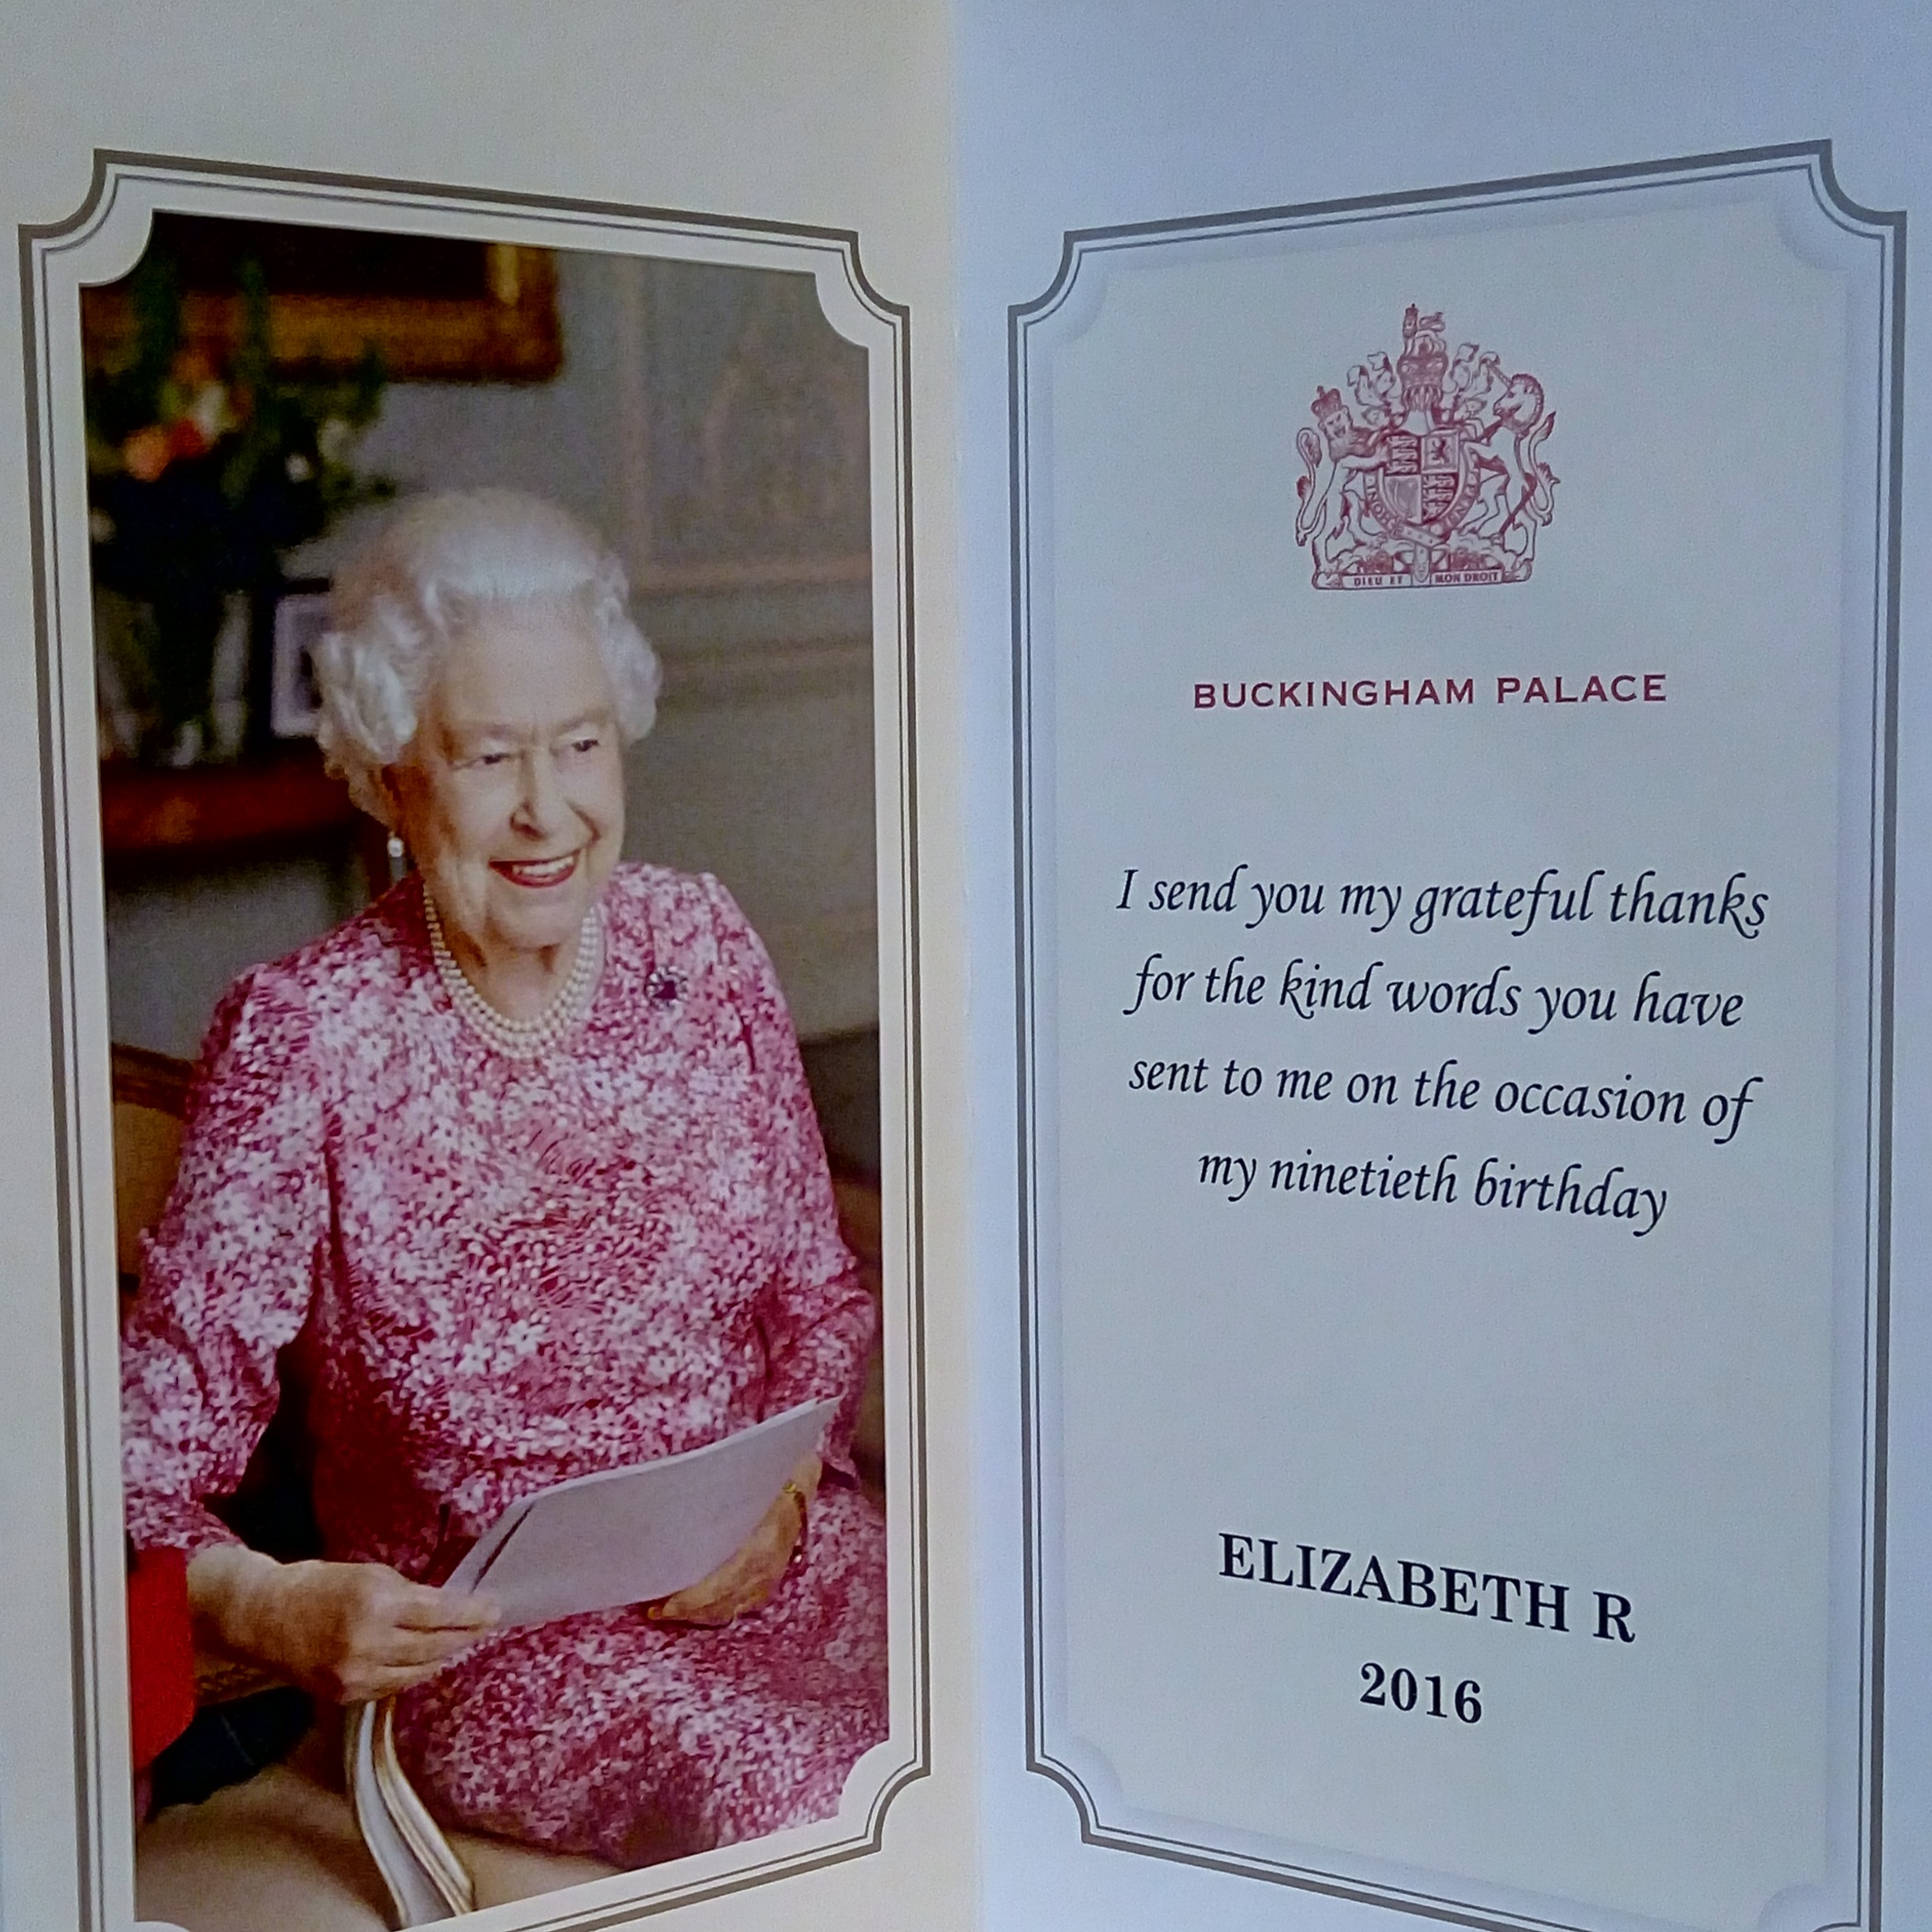 A note from the Queen